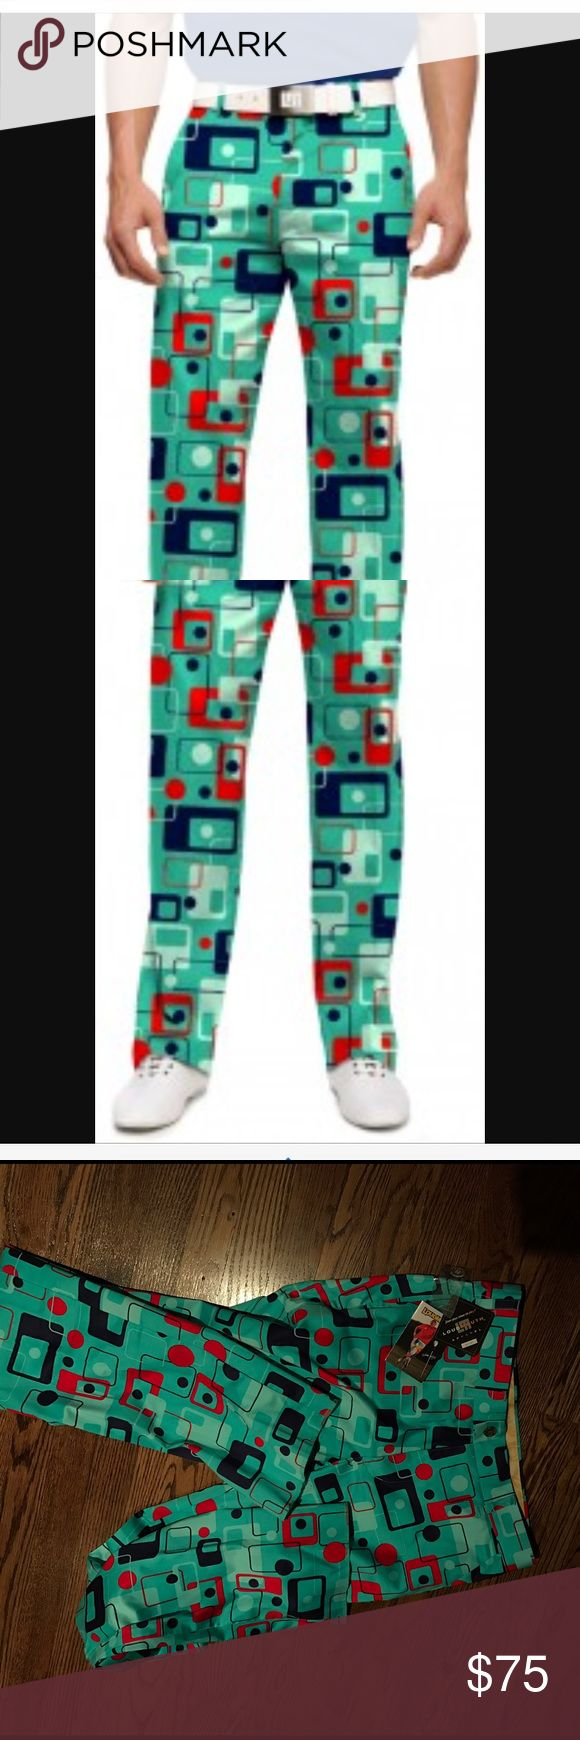 "Men's NWT LOUDMOUTH golf pants NWT Men's SZ 30 waist Unhemmed ""Jon Dalys LOUDMOUTH"" Golf Pants   Print is ""8 track"" and they're a colorful and fun pattern. loudmouth Pants Chinos & Khakis"